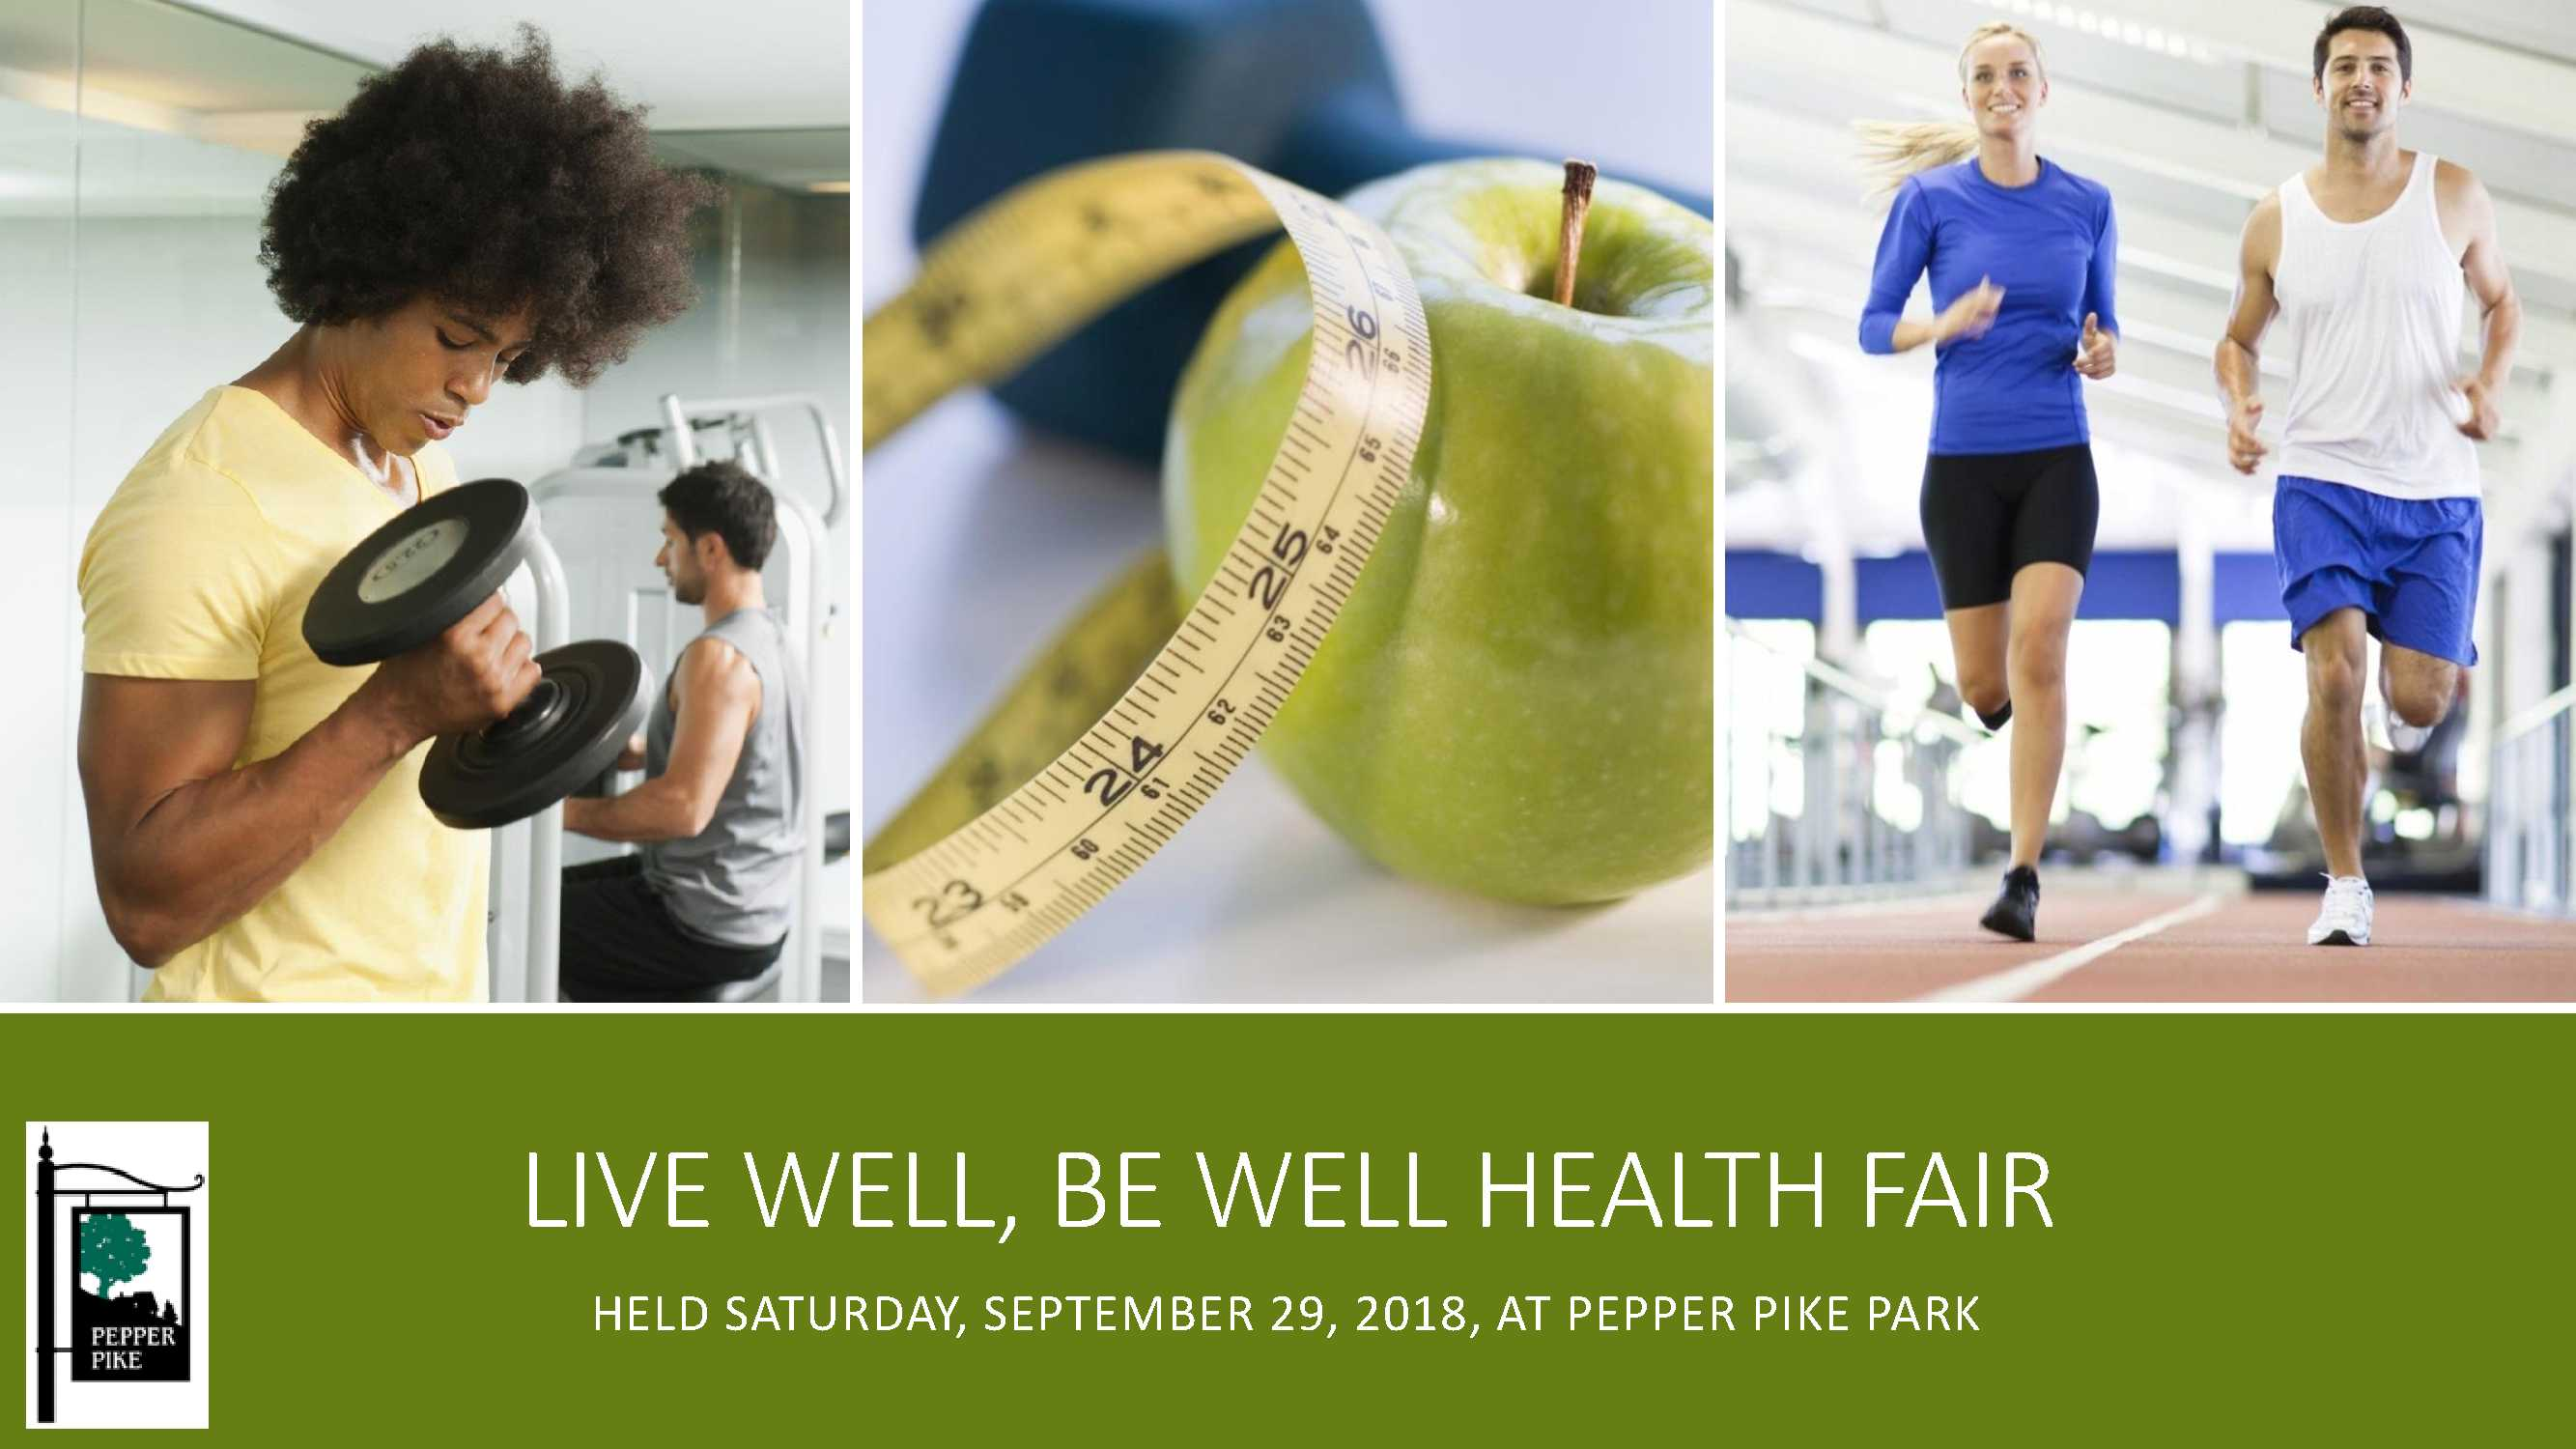 Live well be well health fair-photo gallery_1